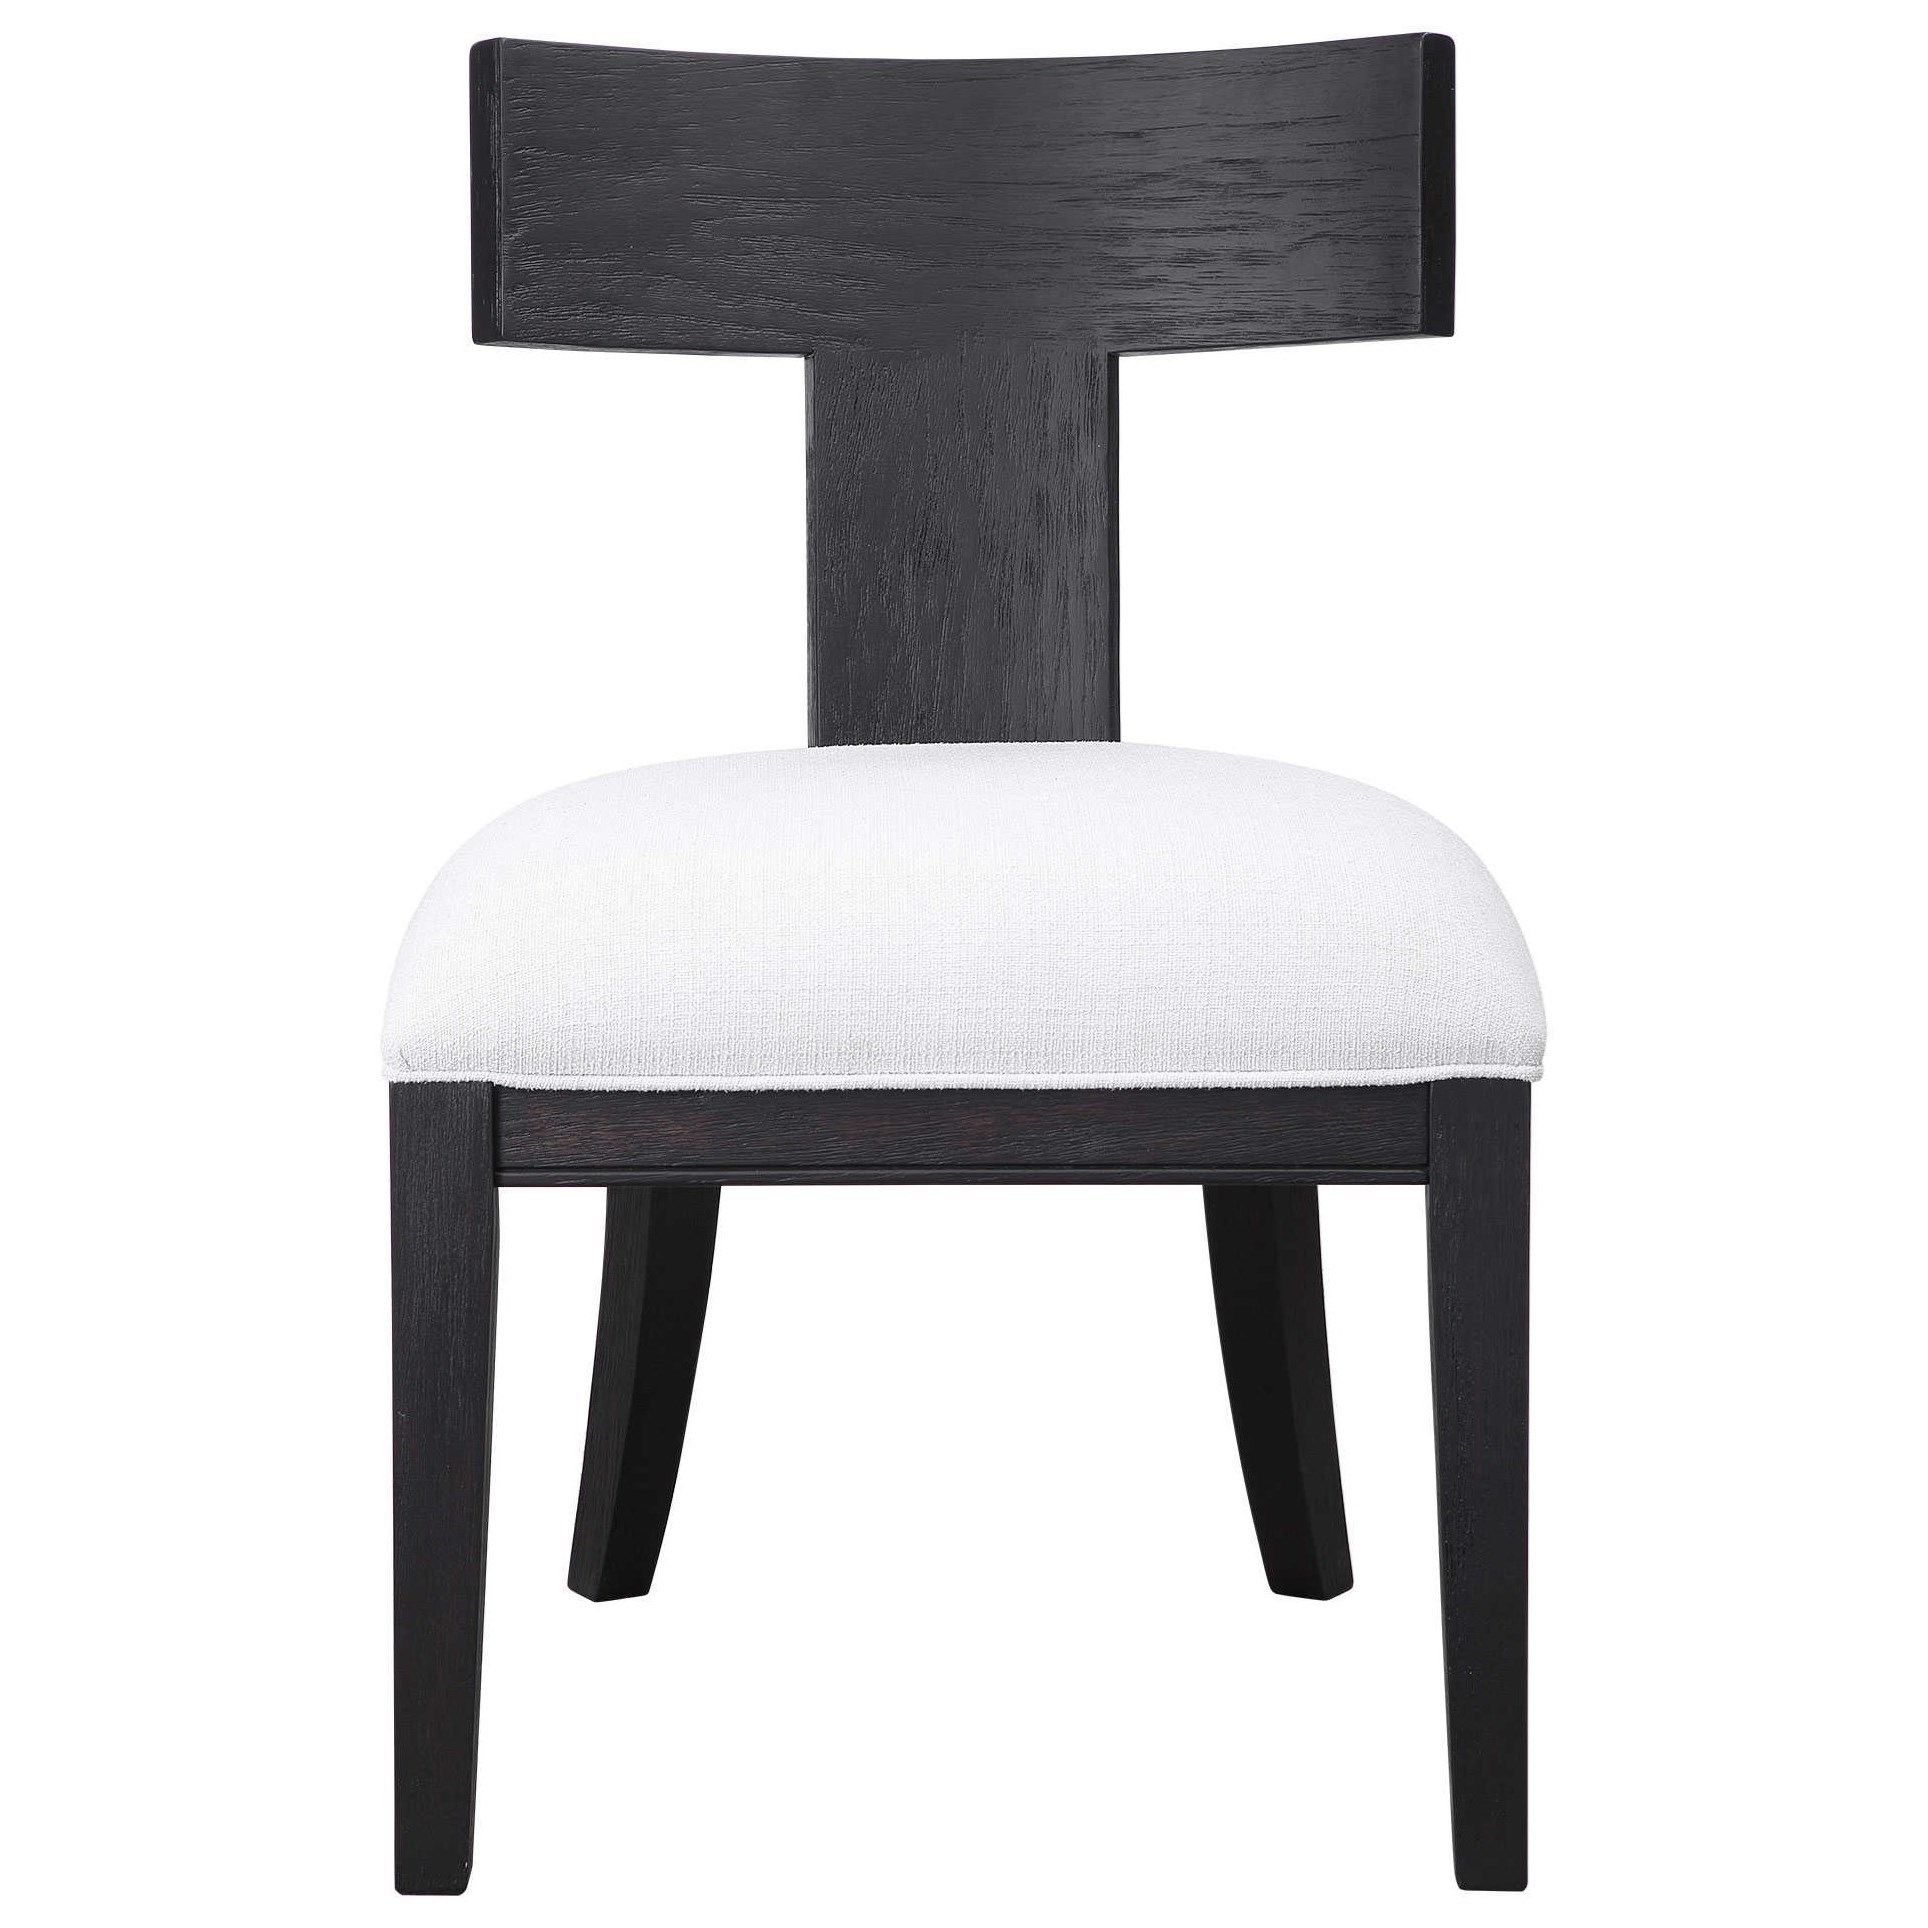 Accent Furniture - Accent Chairs Idris Armless Chair by Uttermost at Goffena Furniture & Mattress Center